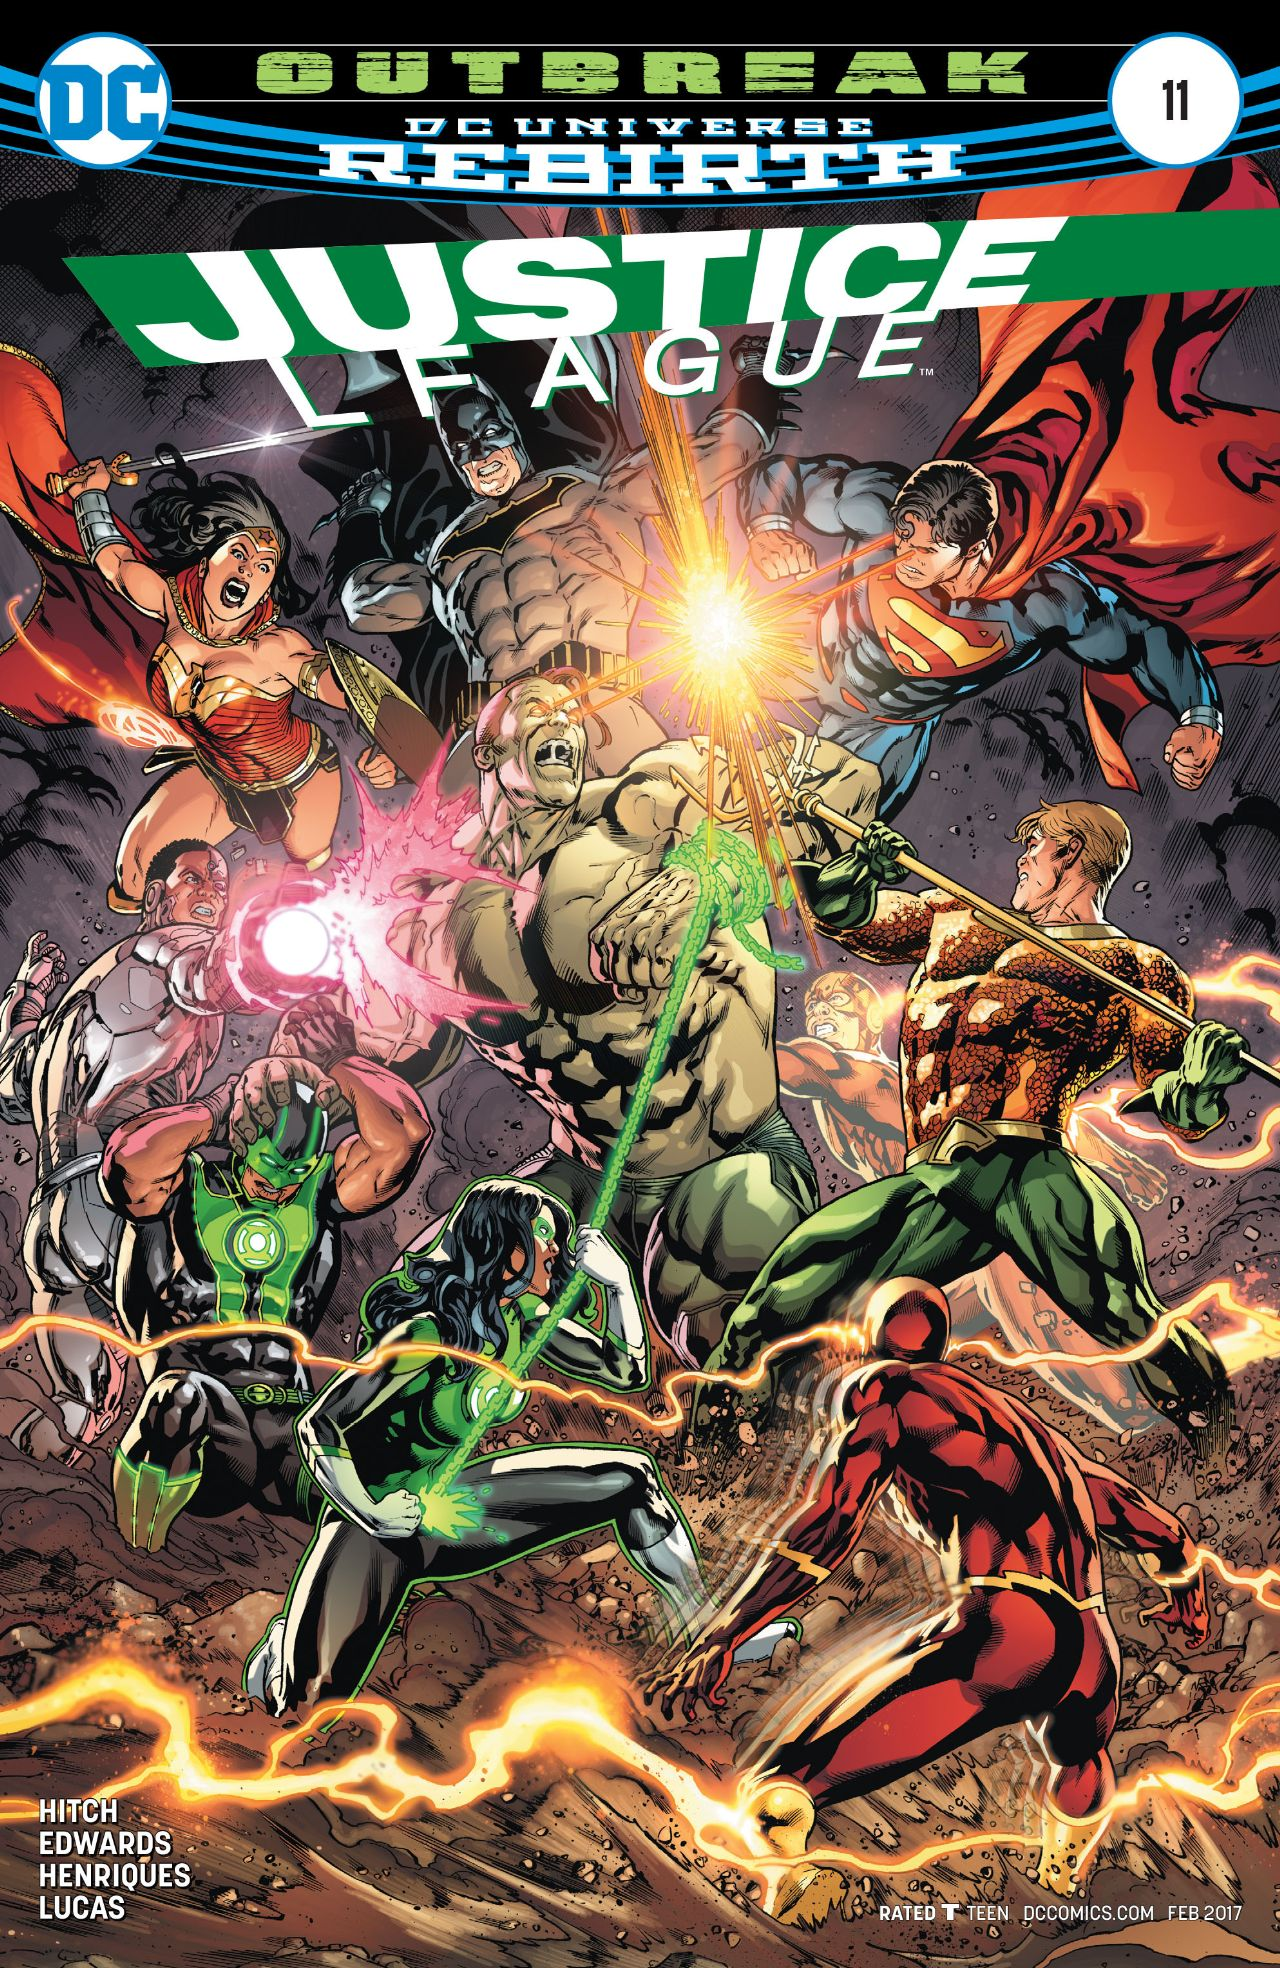 Justice League Vol 3 11 | DC Database | FANDOM powered by ...